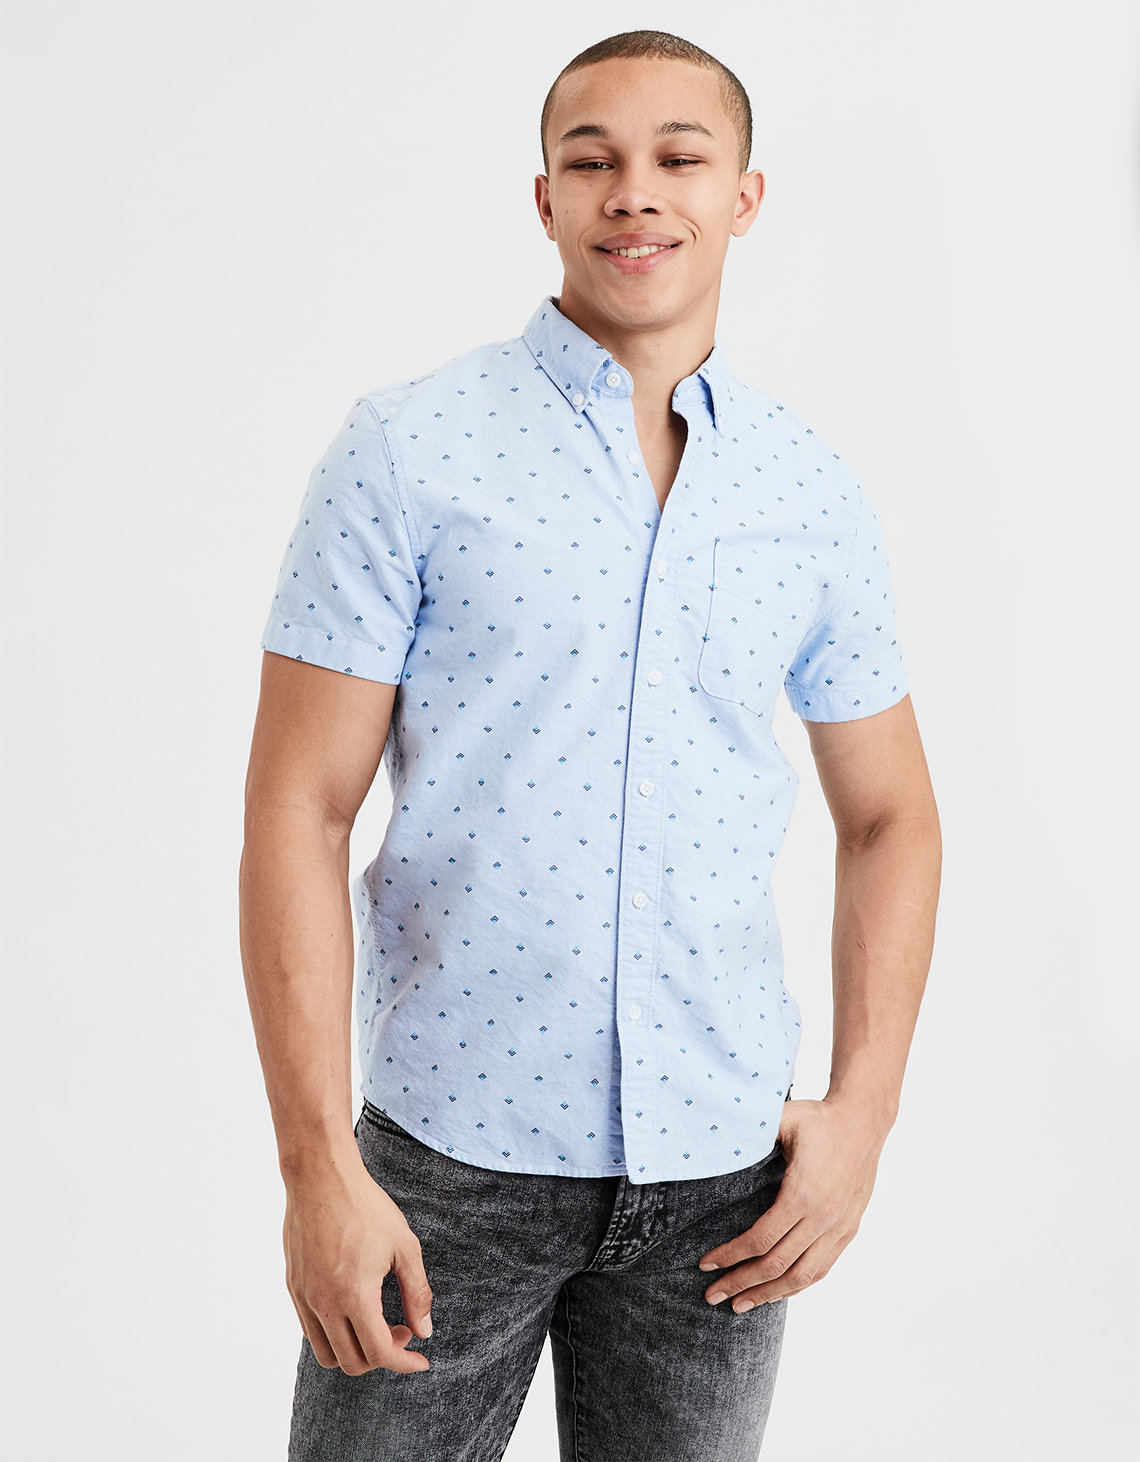 201bfd518c41 AE Short Sleeve Oxford Button Down Shirt. Placeholder image. Product Image